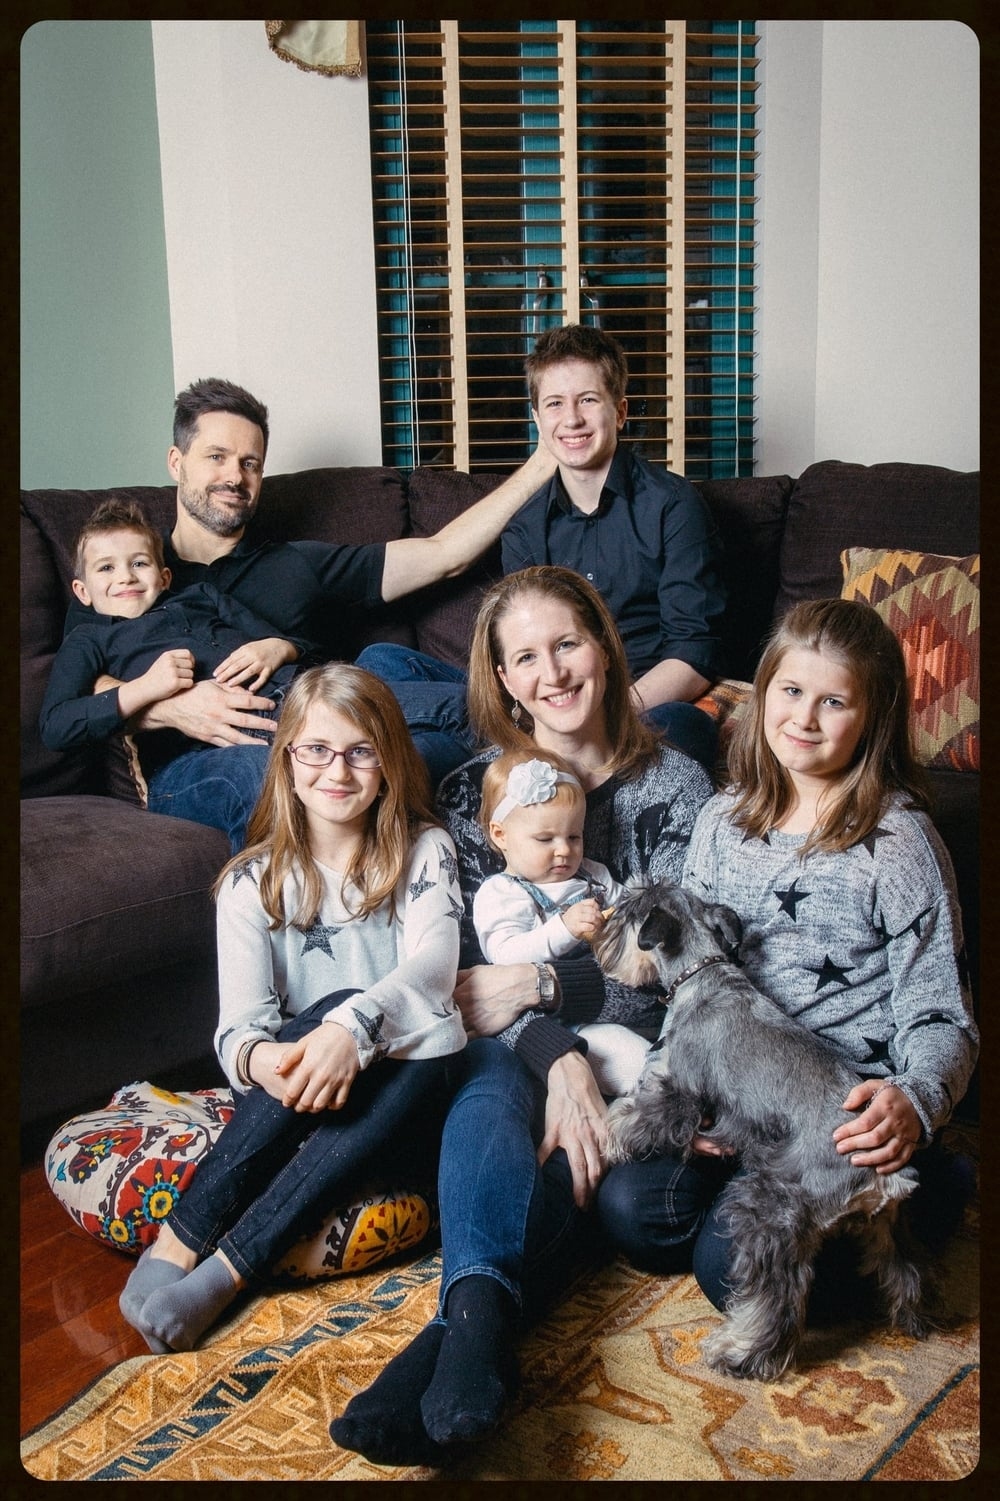 The Weidner Family December 2015.